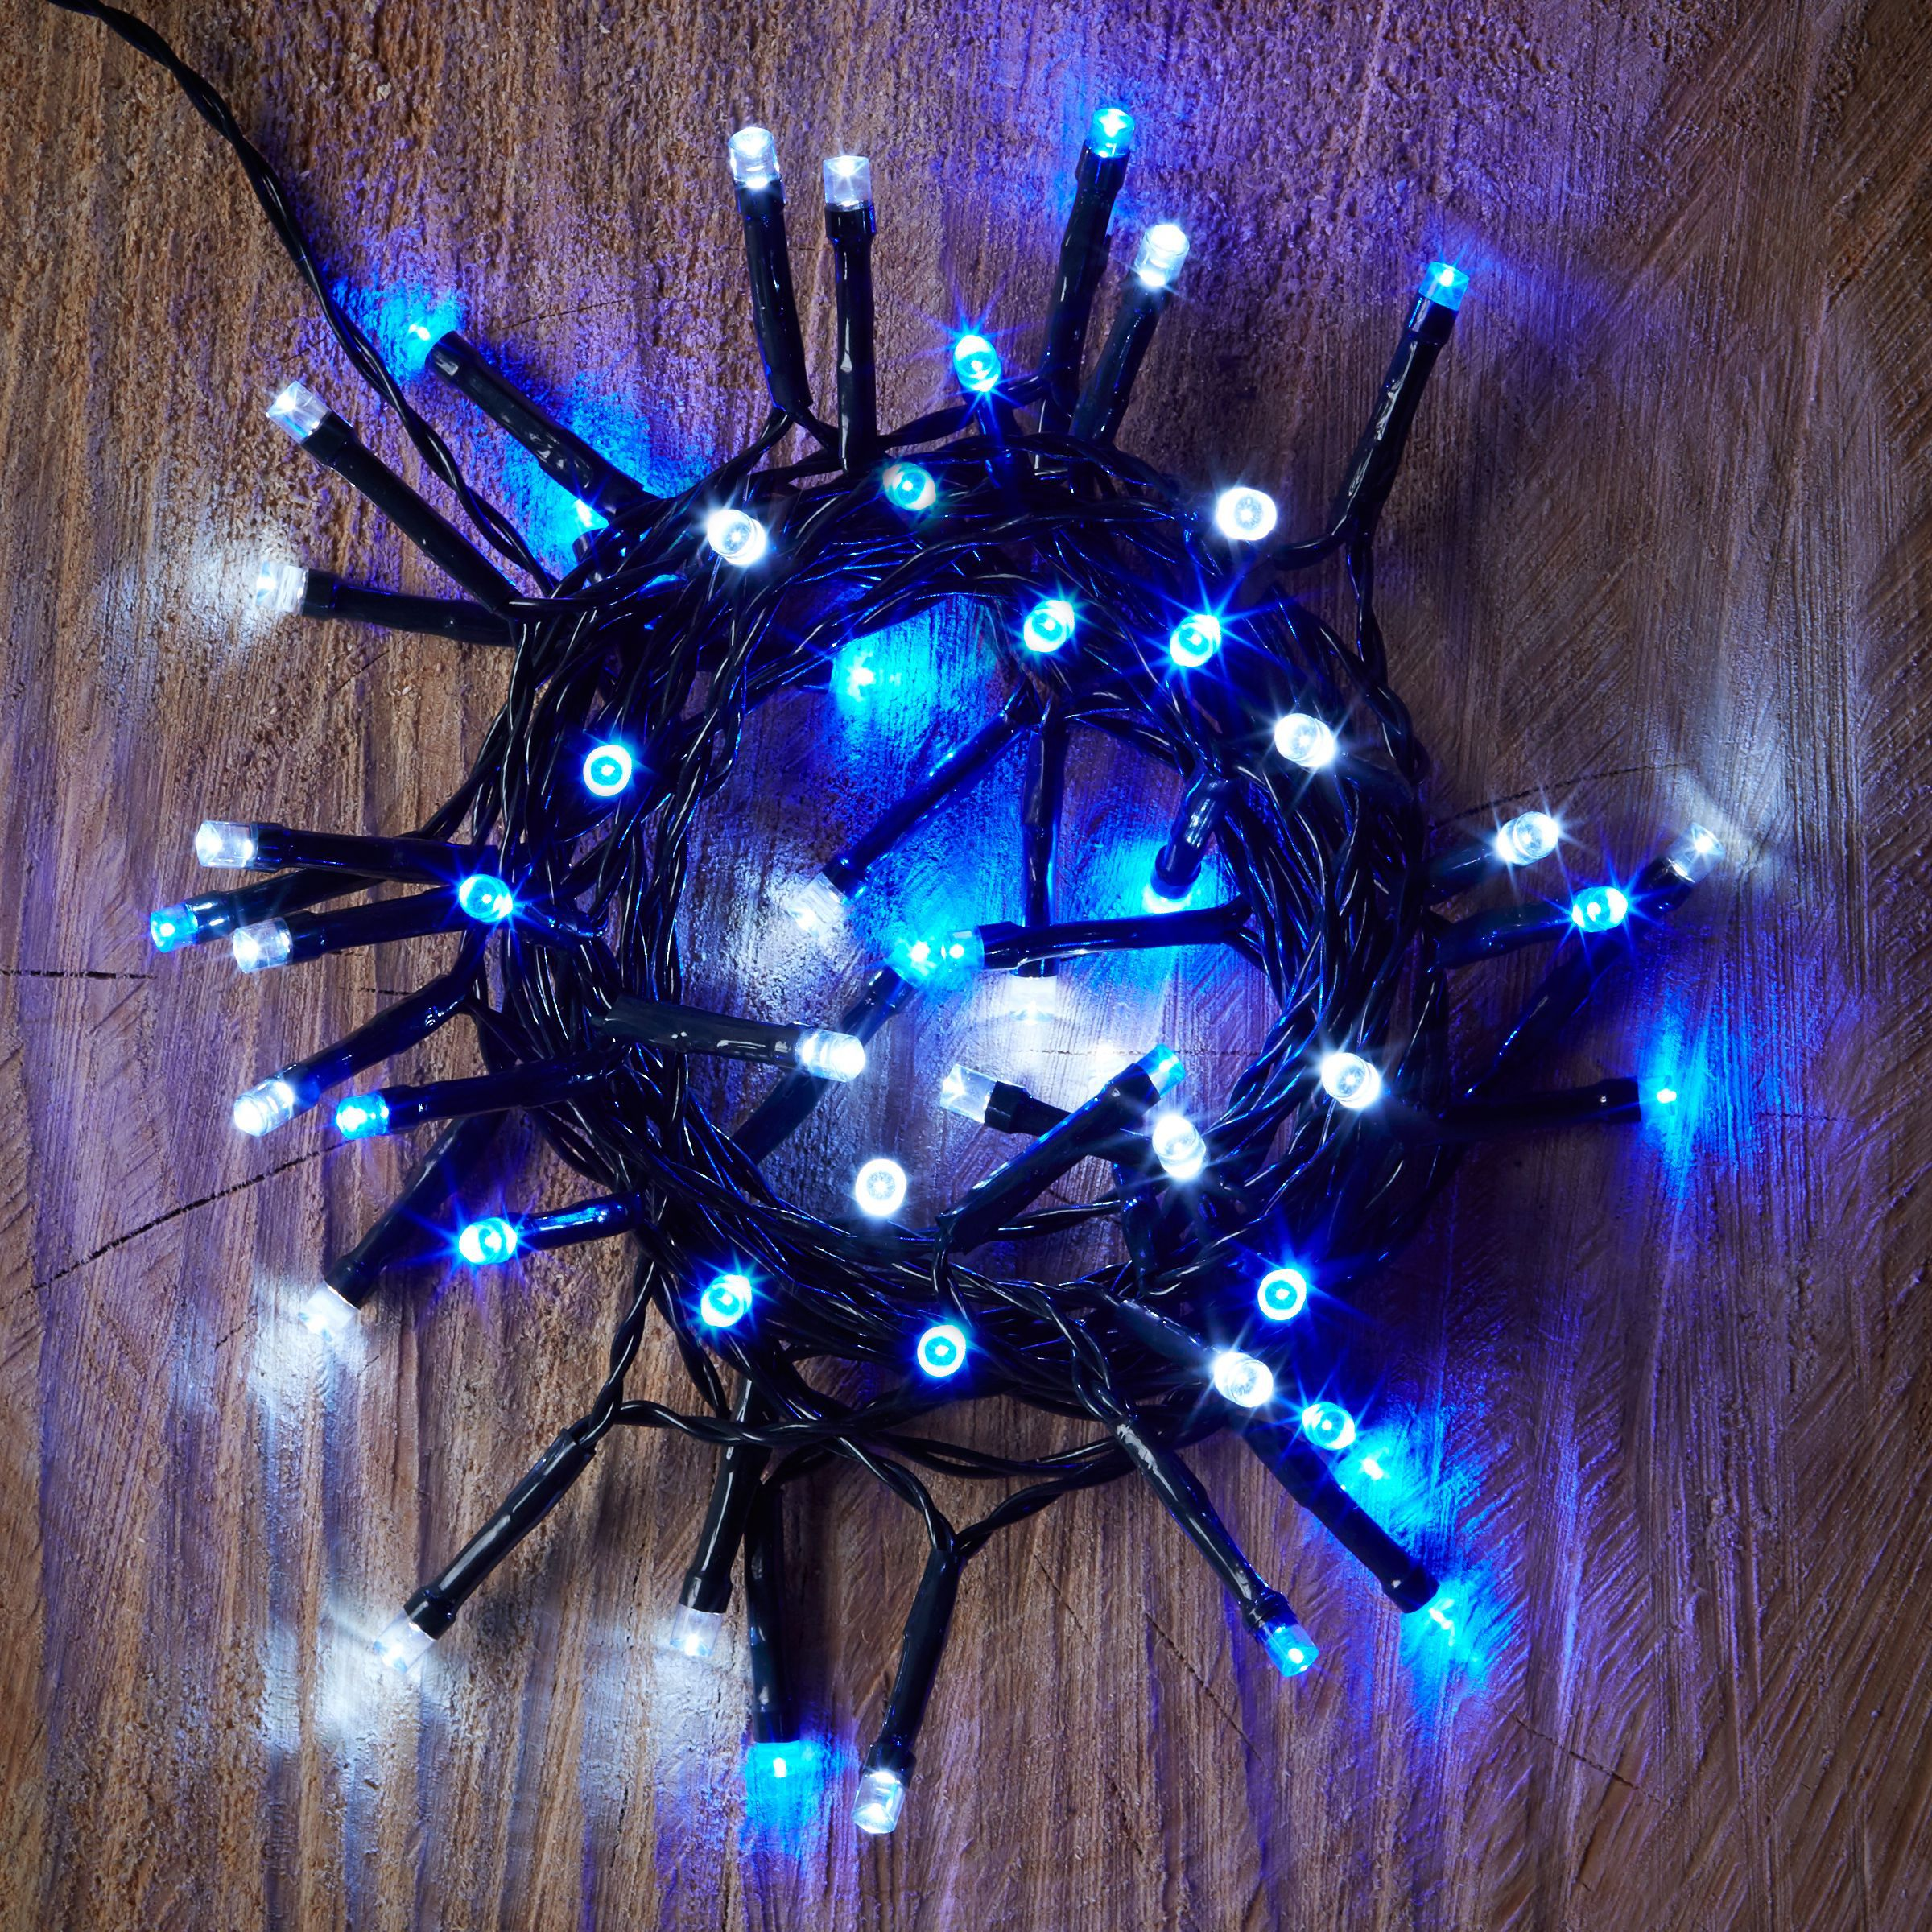 Led String Lights Diy : Battery Operated 50 Blue & White LED String Lights Departments DIY at B&Q